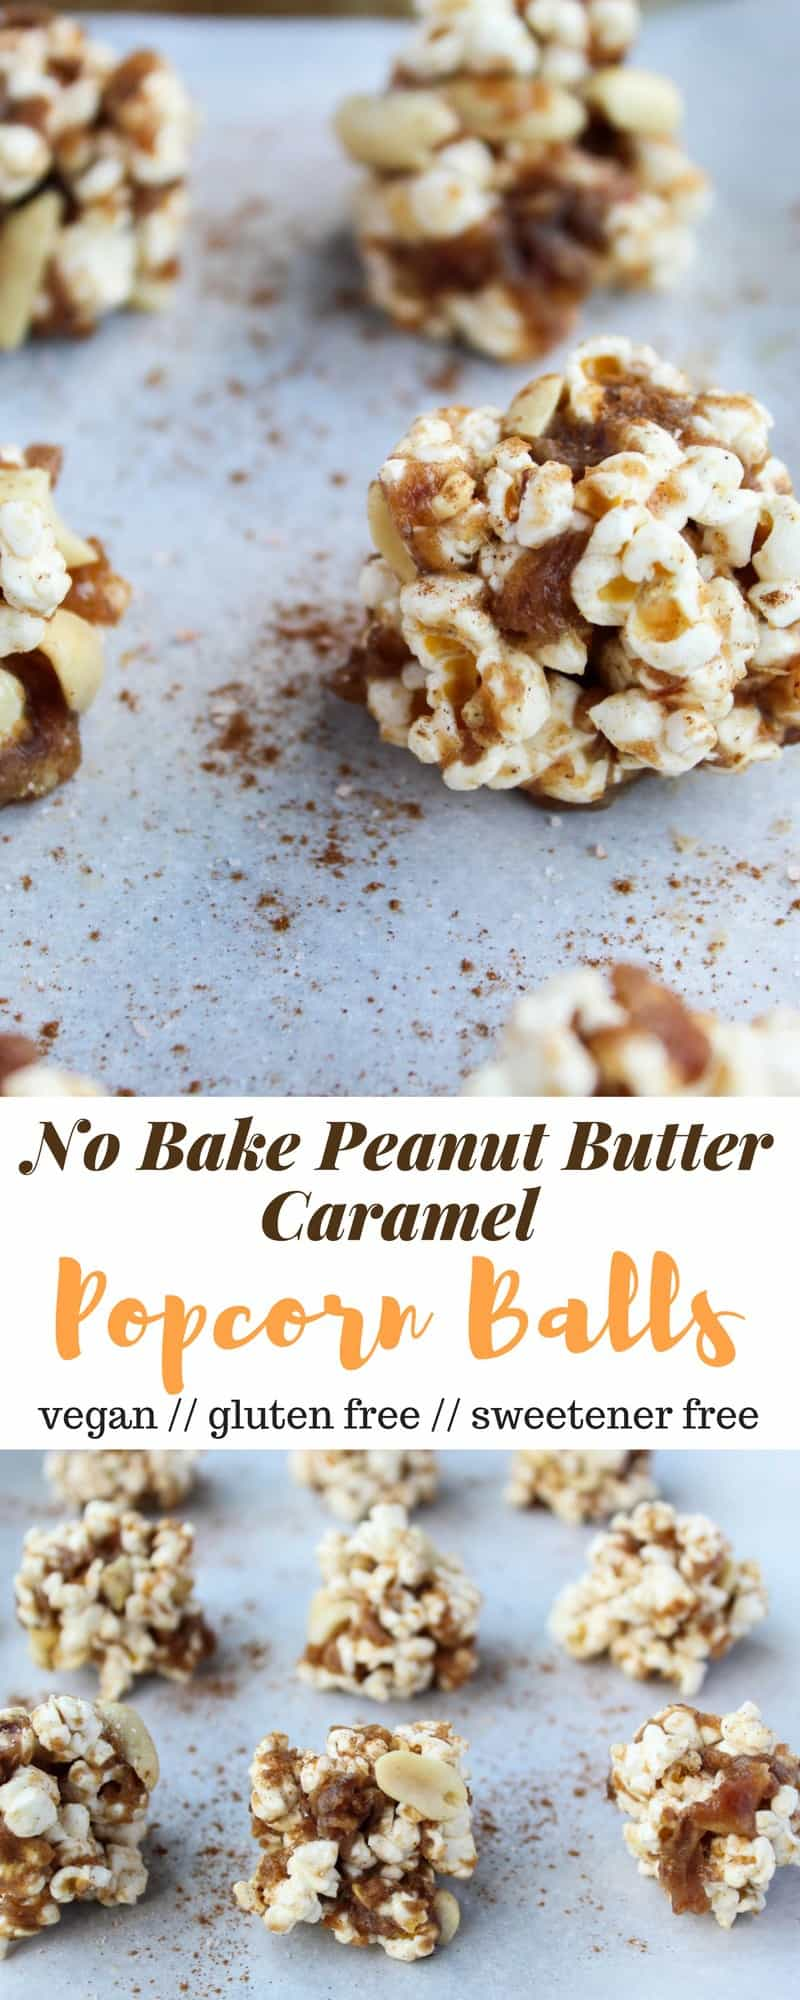 No bake and 30 minutes to make, thesePeanut Butter Caramel Popcorn Ballsare the perfect holiday snack. No added sweetener,vegan, and gluten free! - Eat the Gains